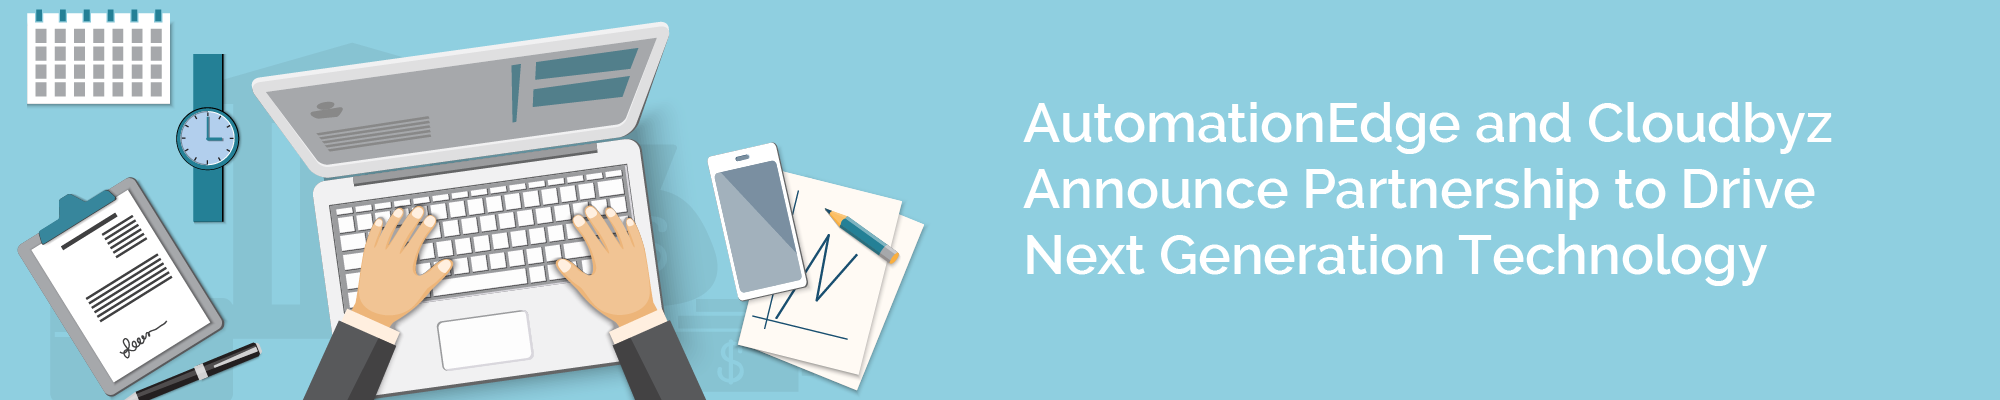 Automation Edge and Cloudbyz Announce Partnership to Drive Next Generation Technology